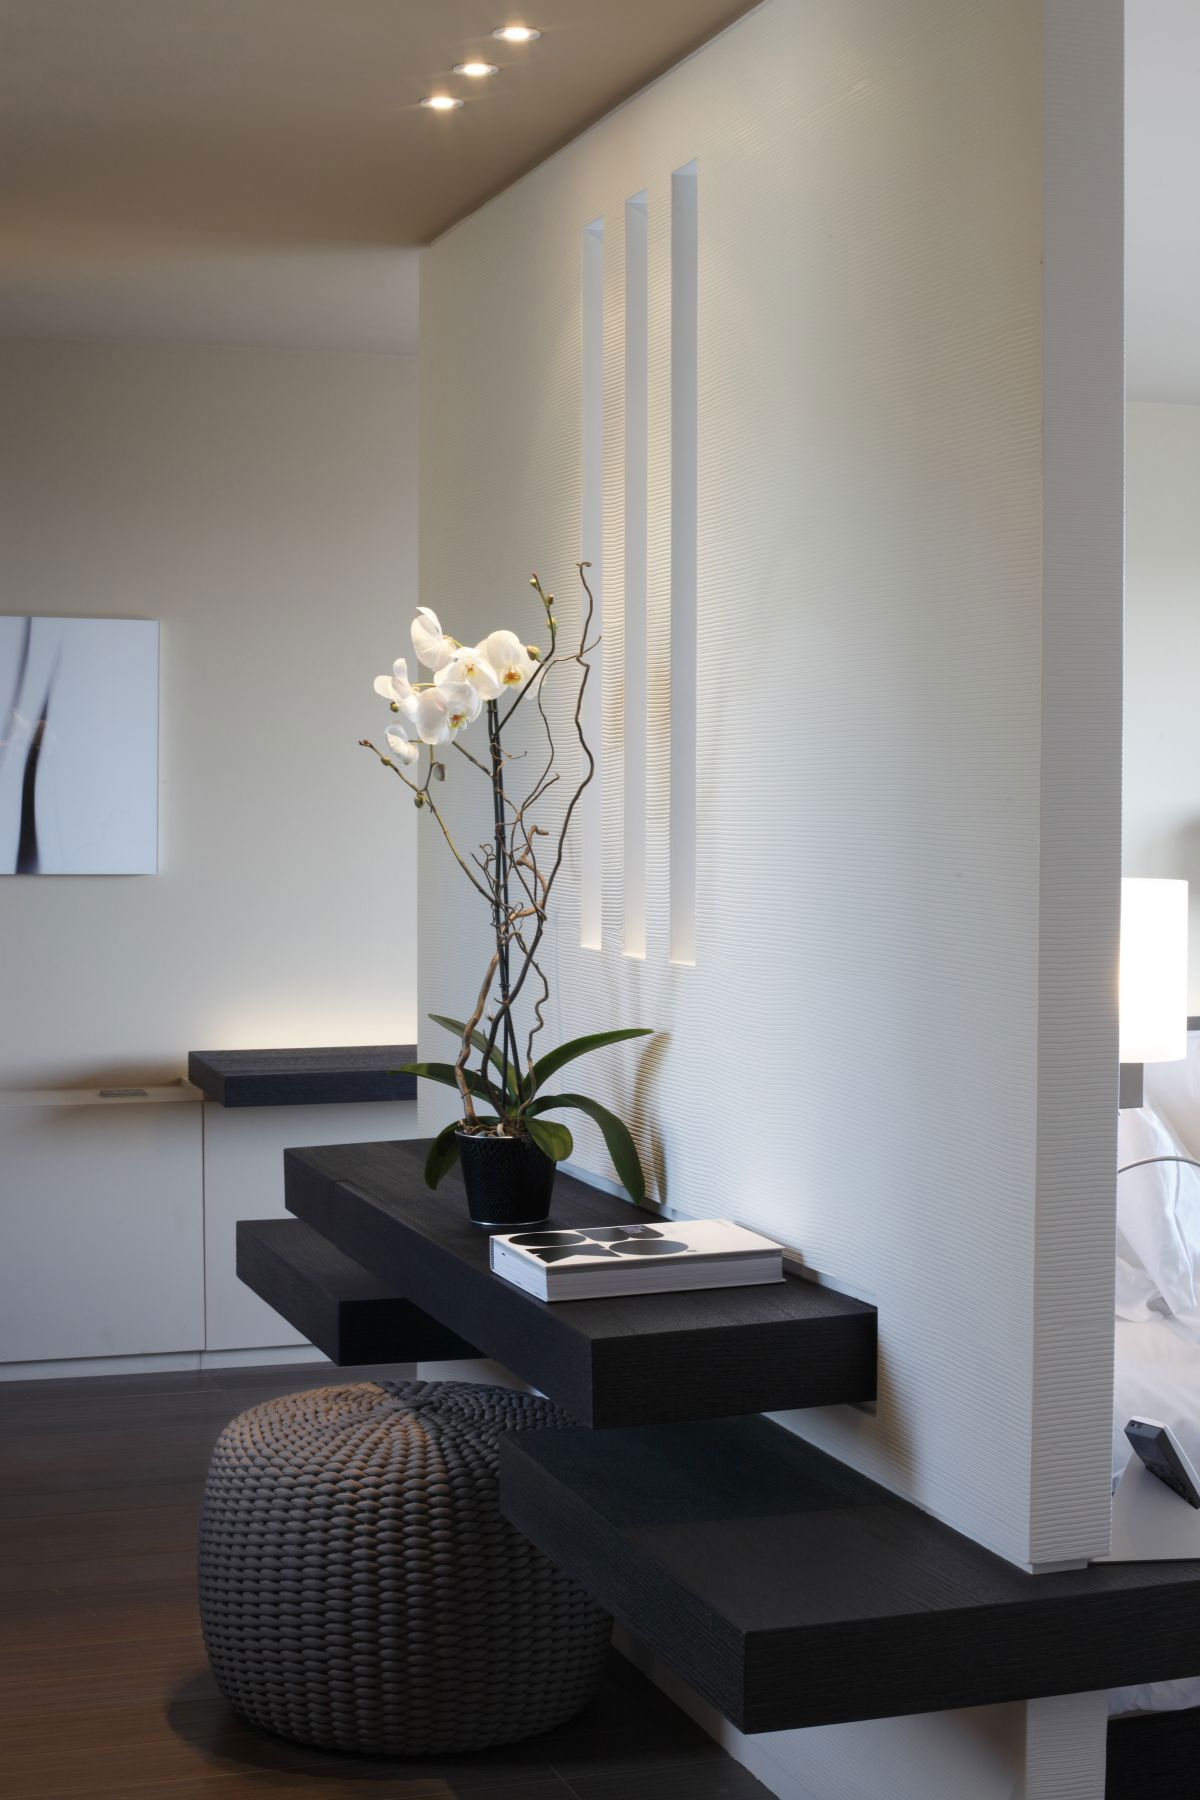 single wall shelf would work beautifully as an entry table with the right spot lighting and orchid anyway la rserve hotel in ramatuelle by jean michel